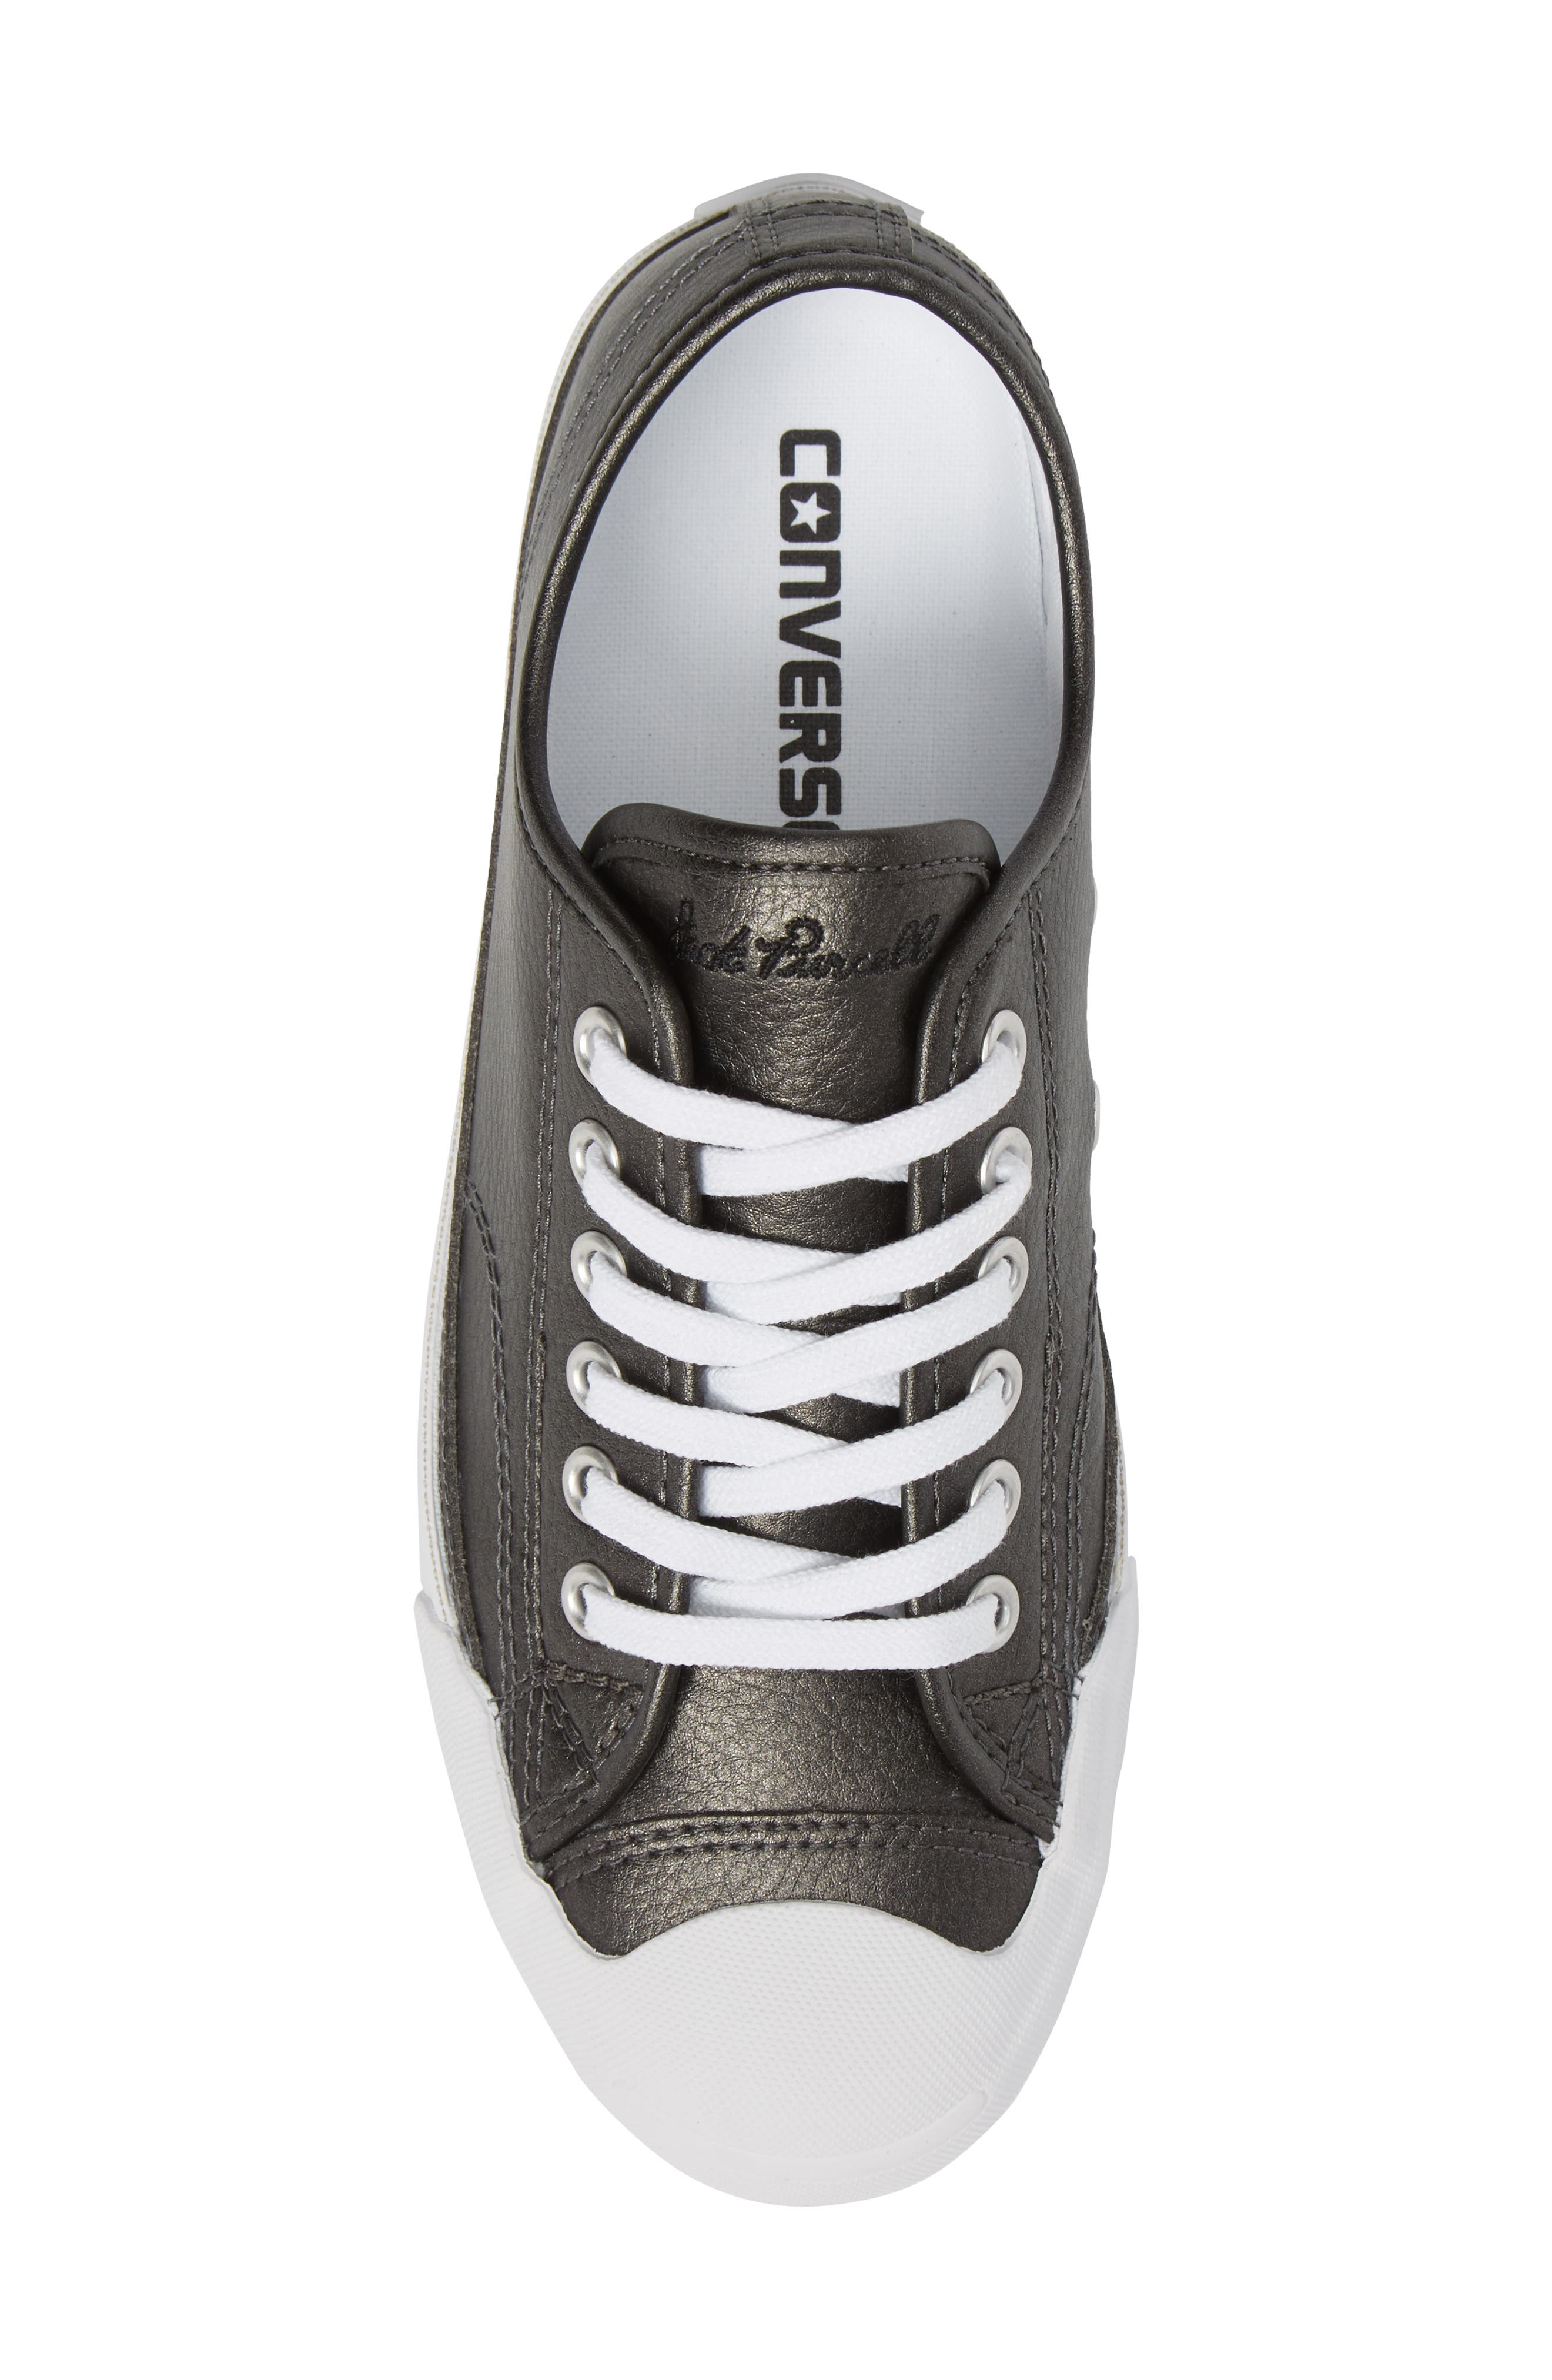 Jack Purcell Low Top Sneaker,                             Alternate thumbnail 5, color,                             001